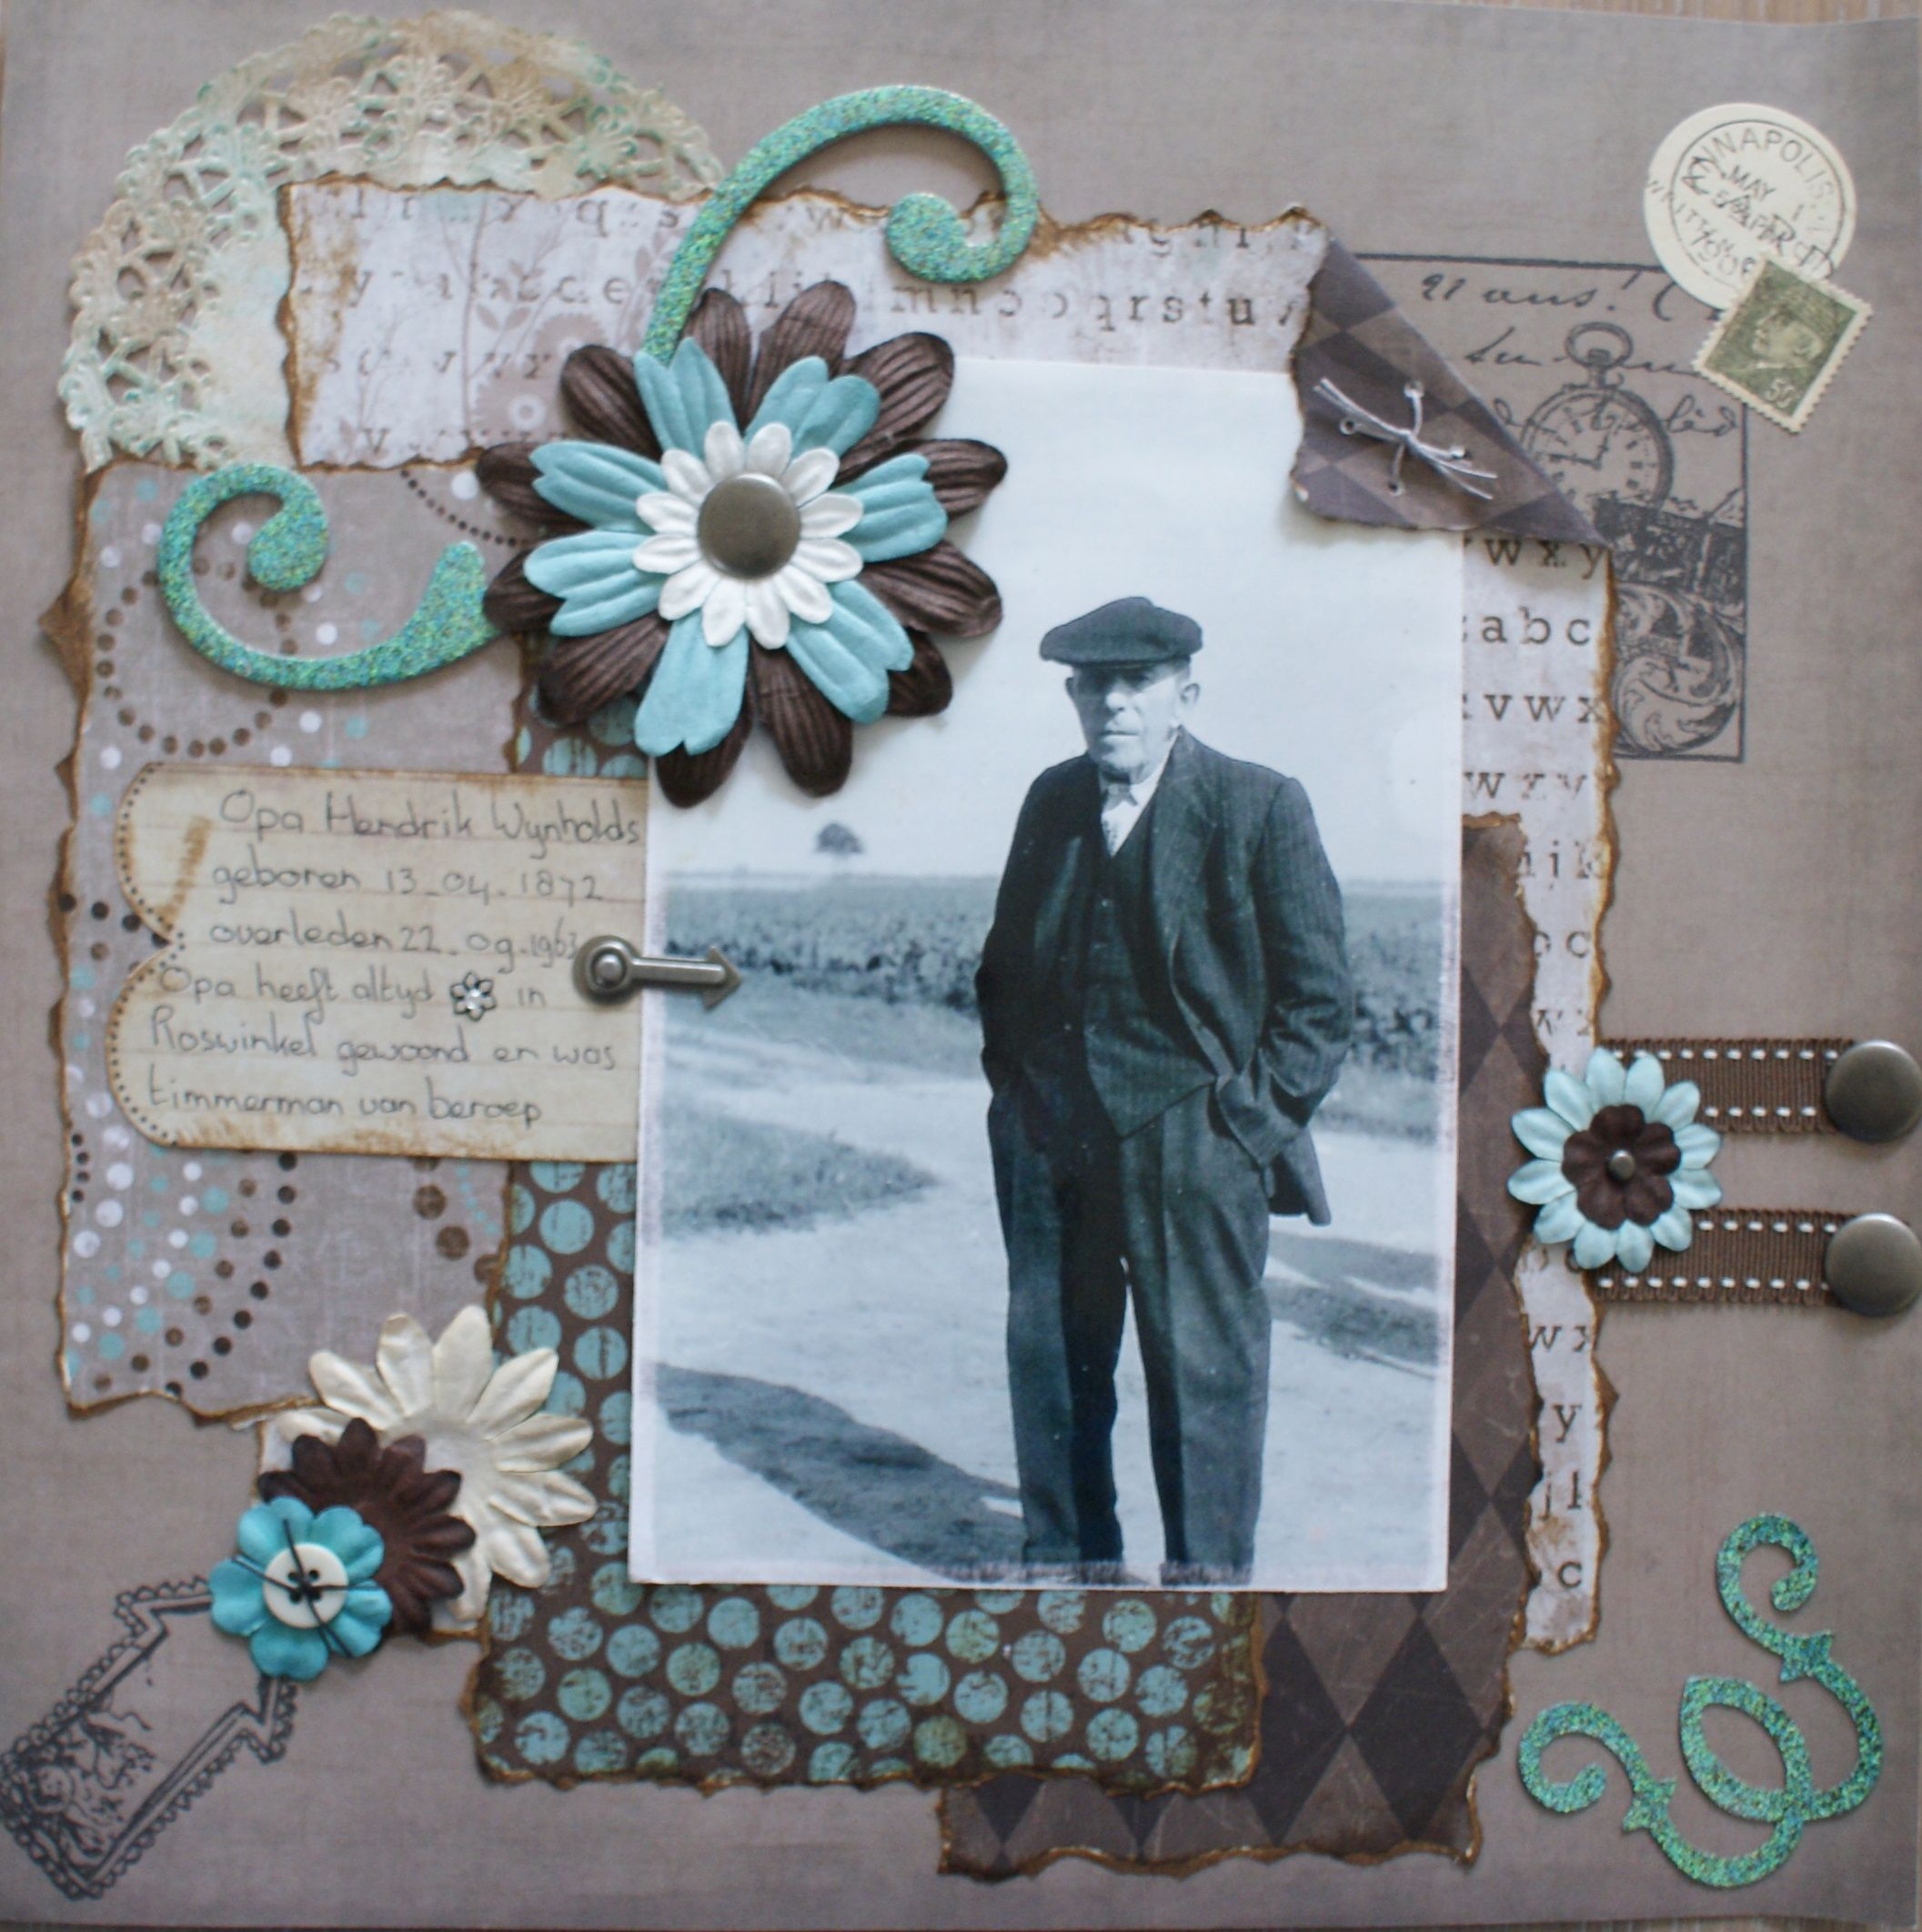 Toko my scrapbook ideas jakarta